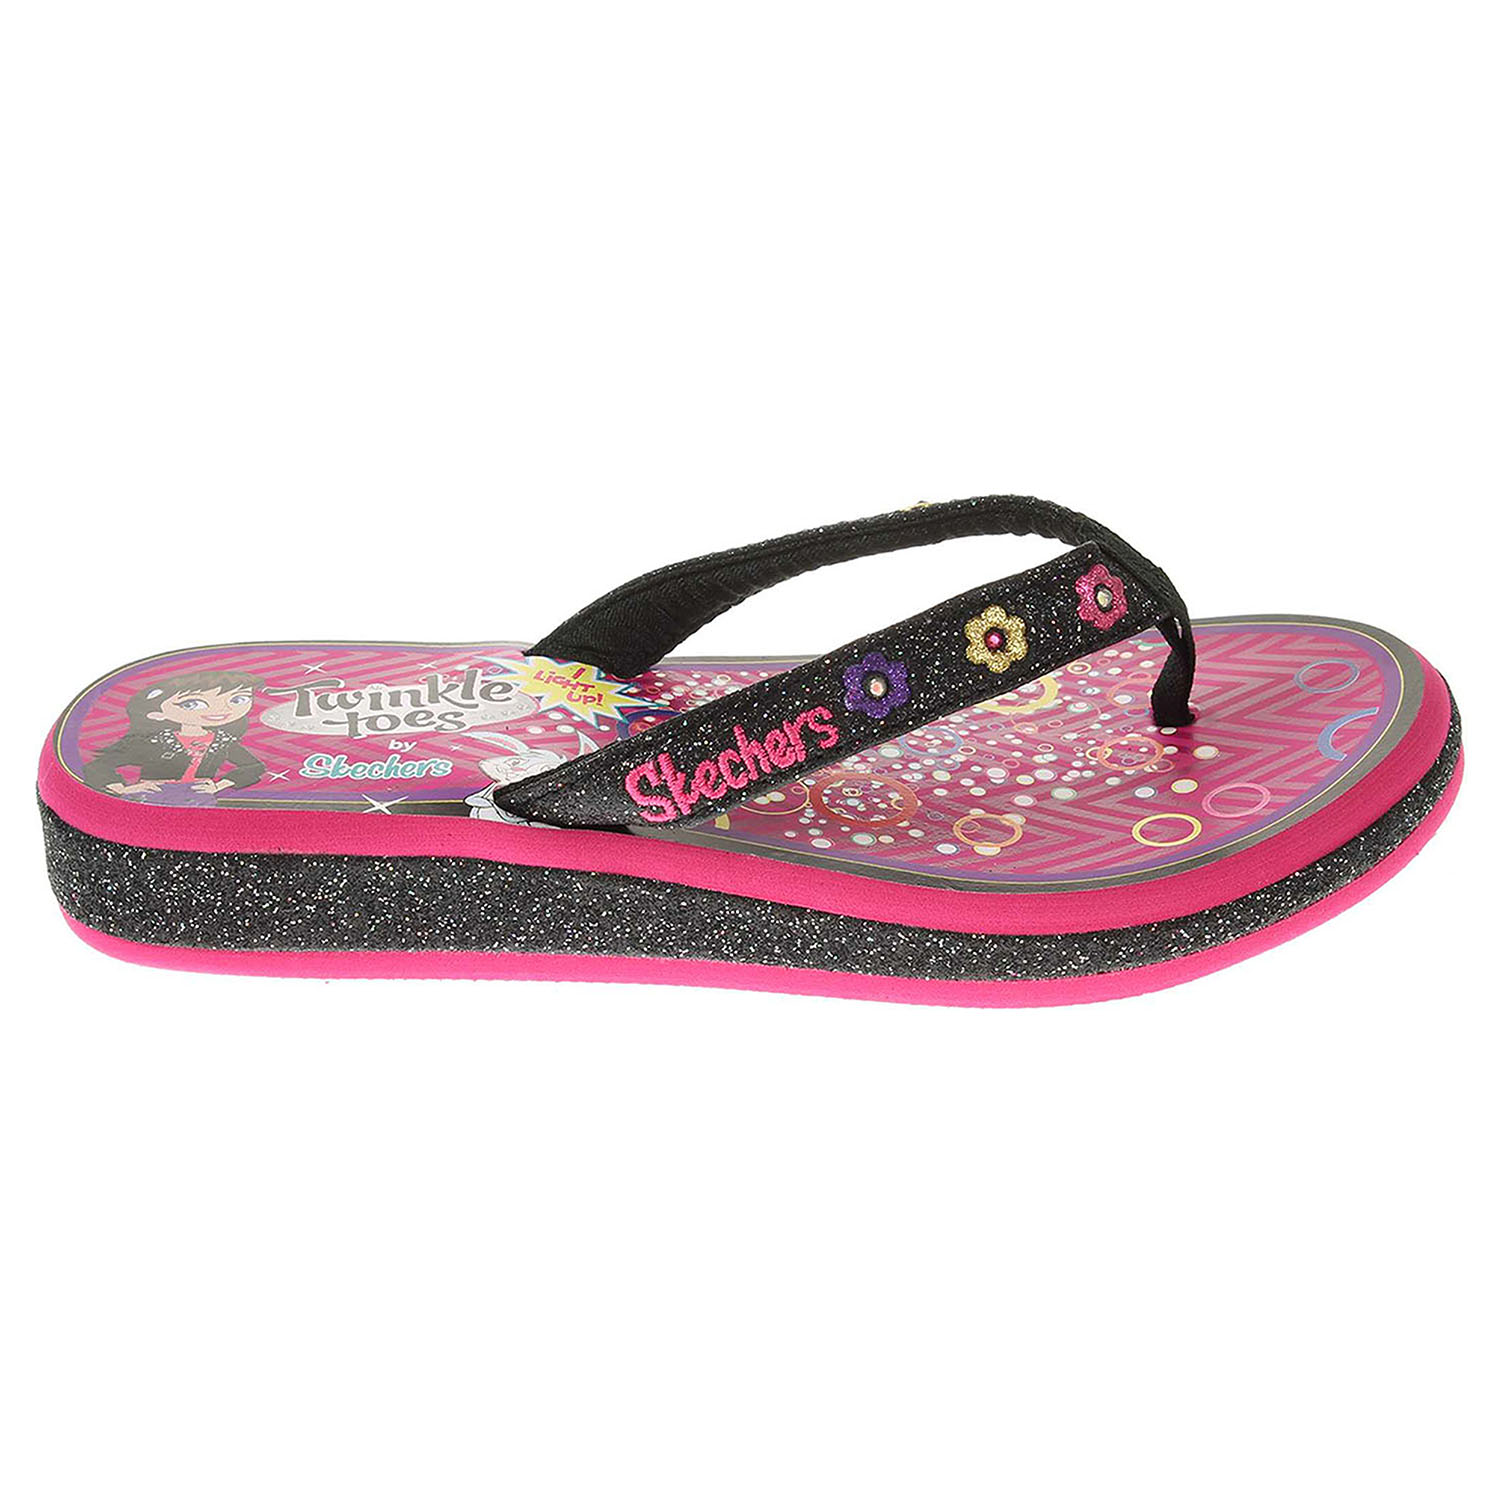 Skechers Summerglow bl/hot pink 30